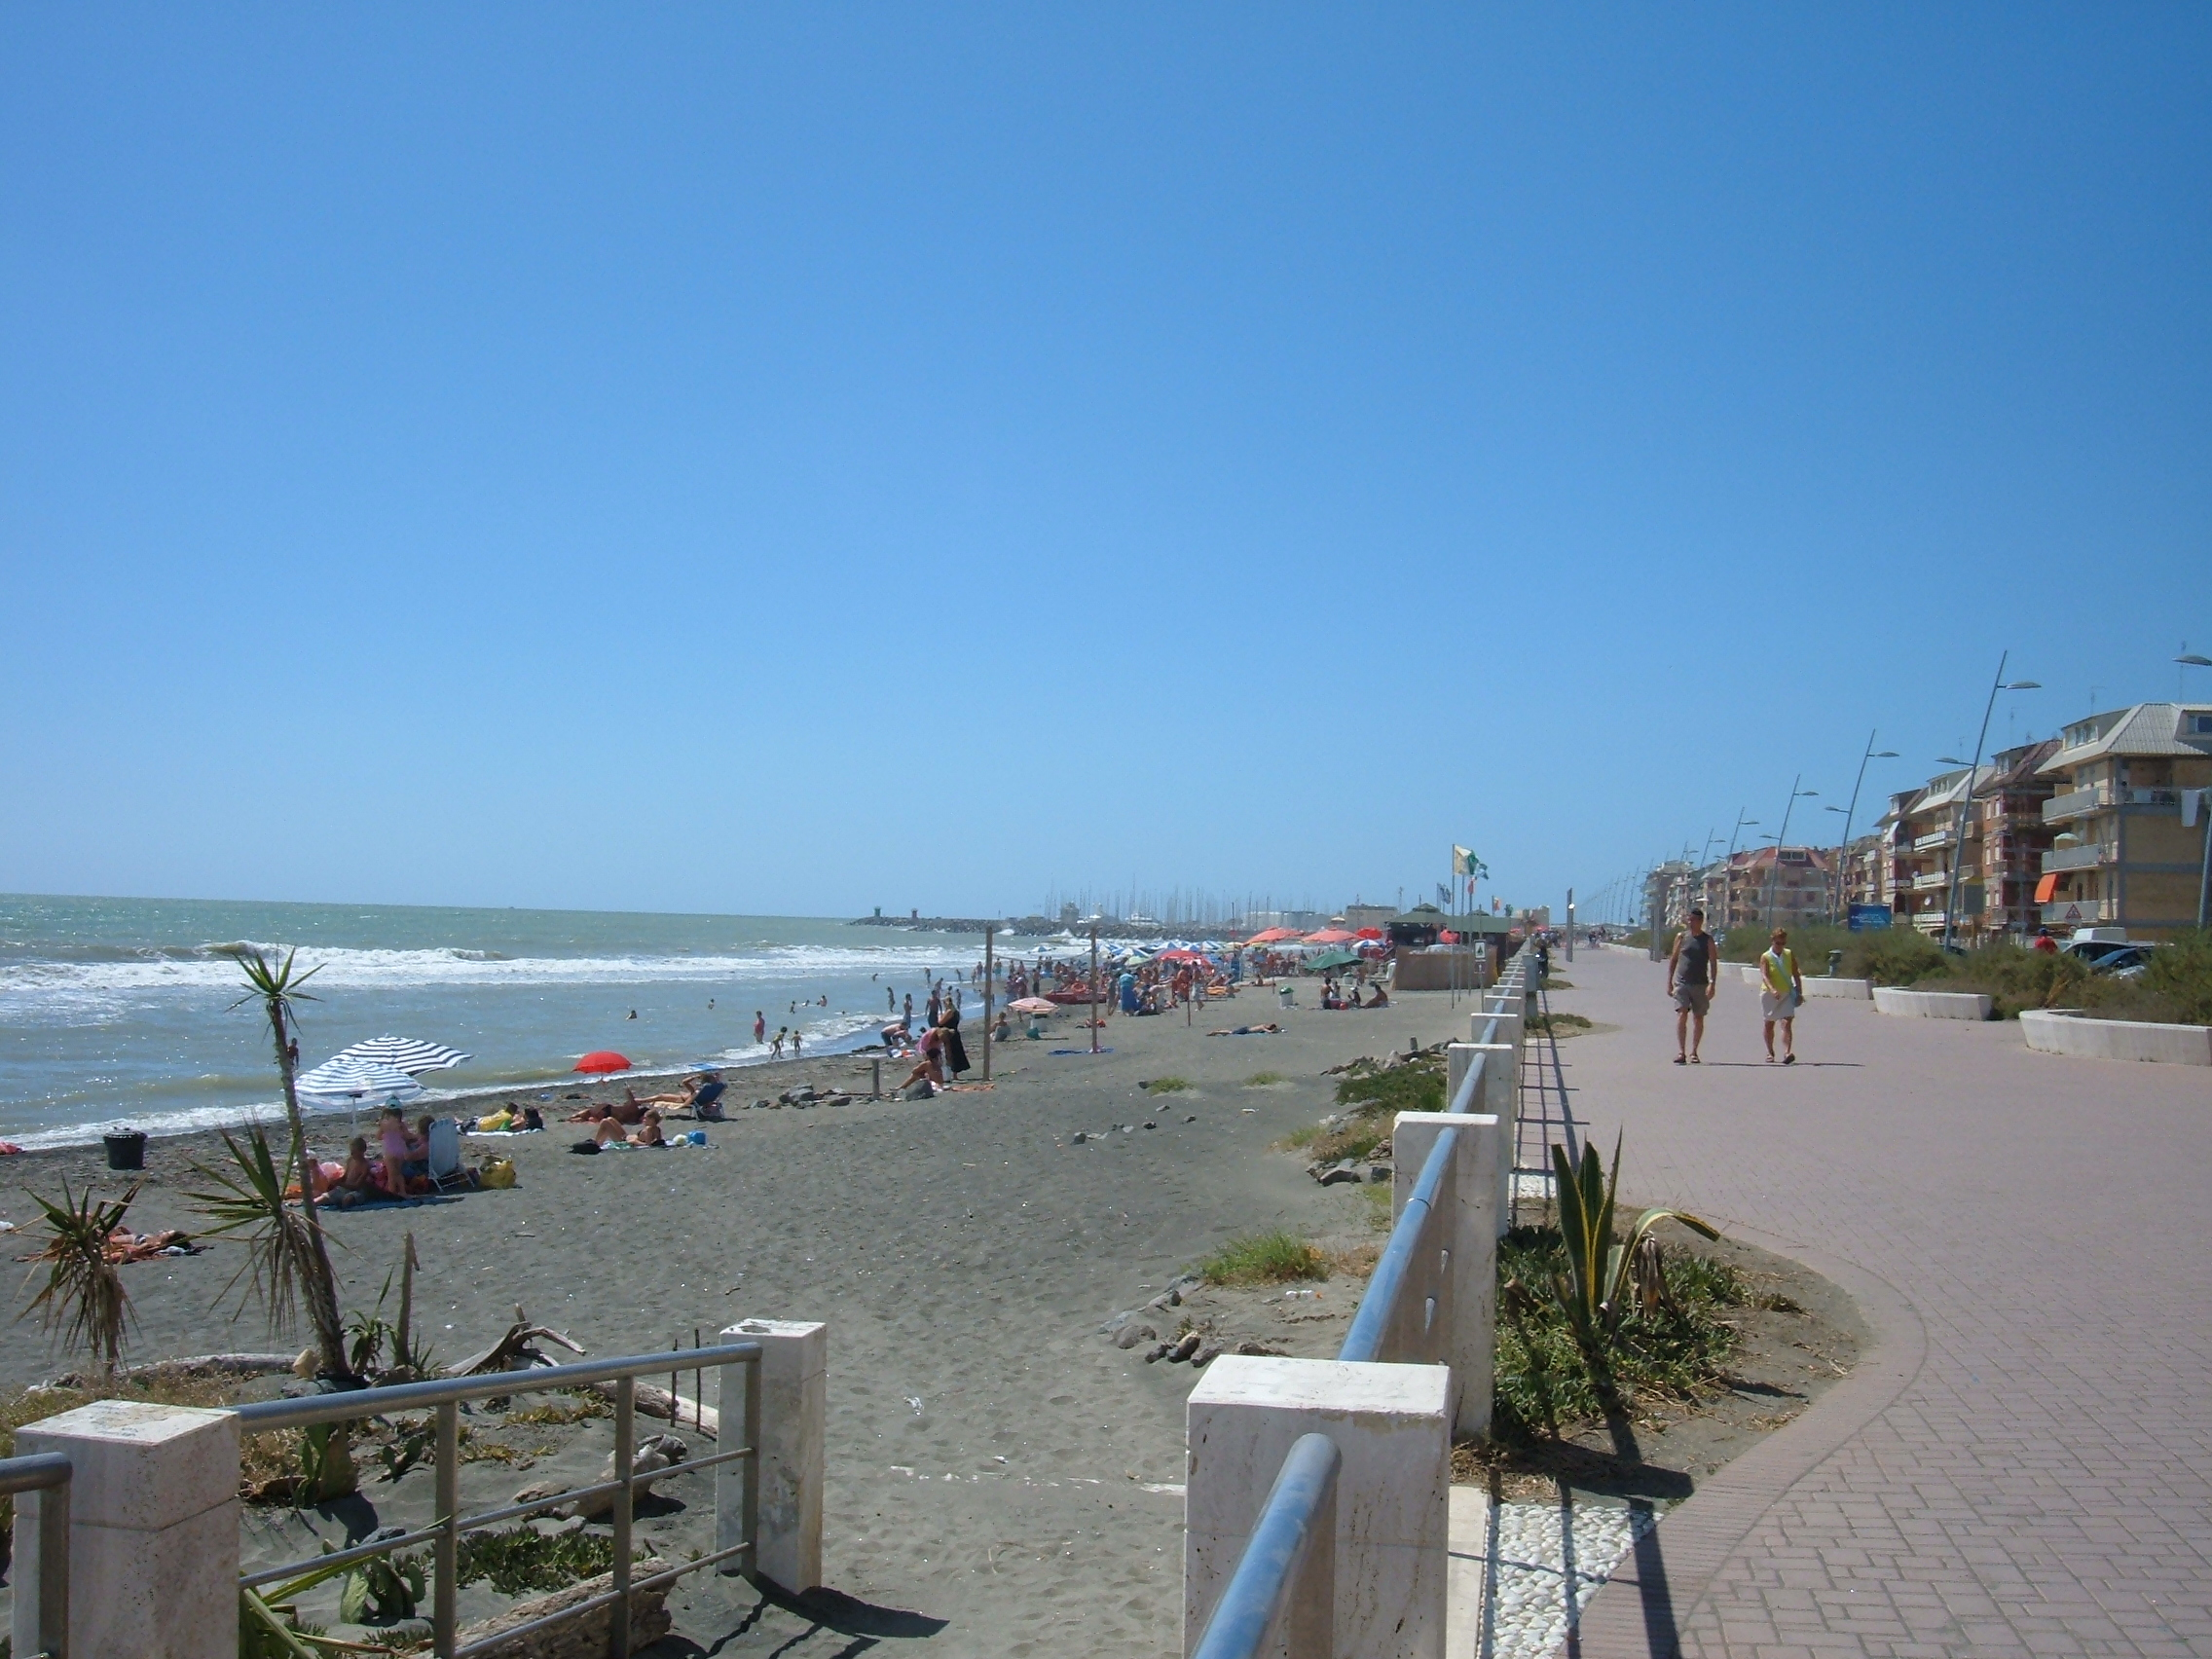 Lido di Ostia Italy  city images : Beaches in Rome | AnywhereTraveler